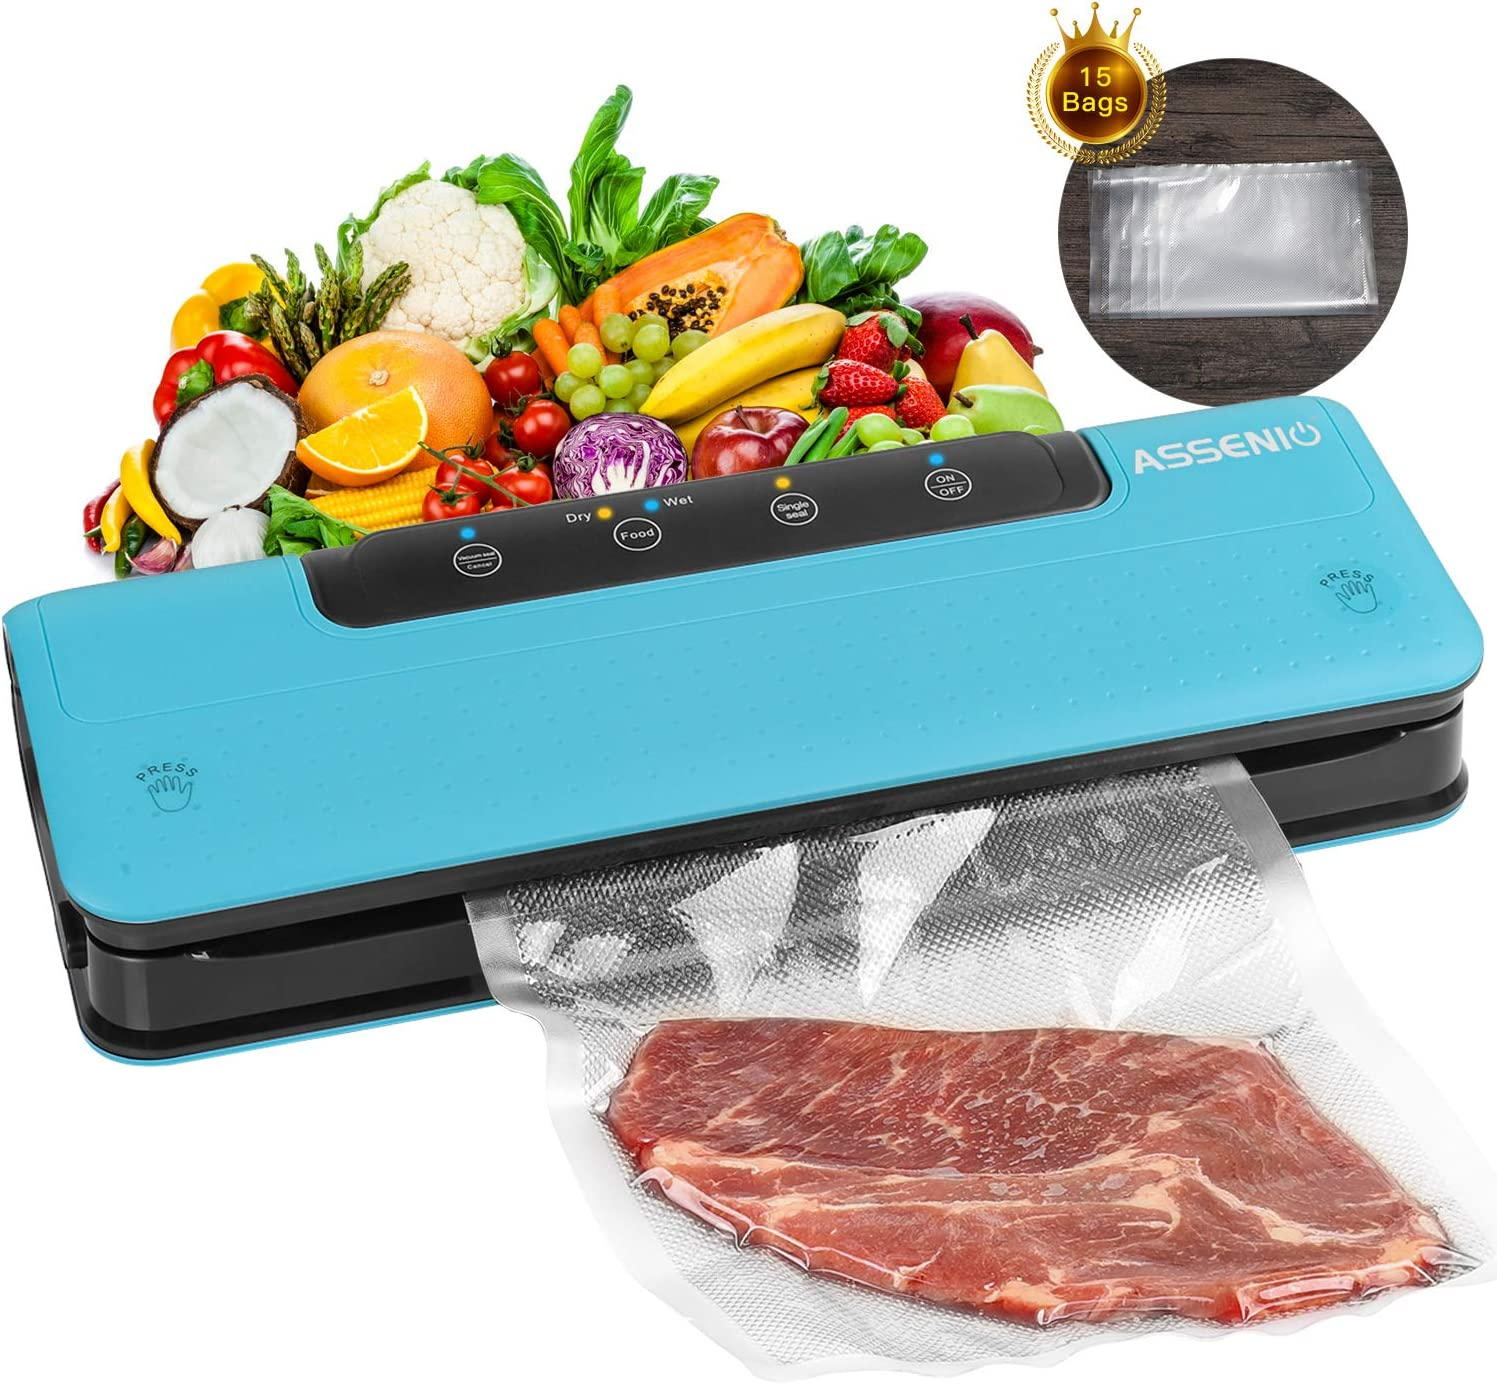 Vacuum Sealer Machine, ASSENIO Automatic Food Sealer with Dry & Moist Modes, Compact & Easy Clean,Bags (FDA-Certified)